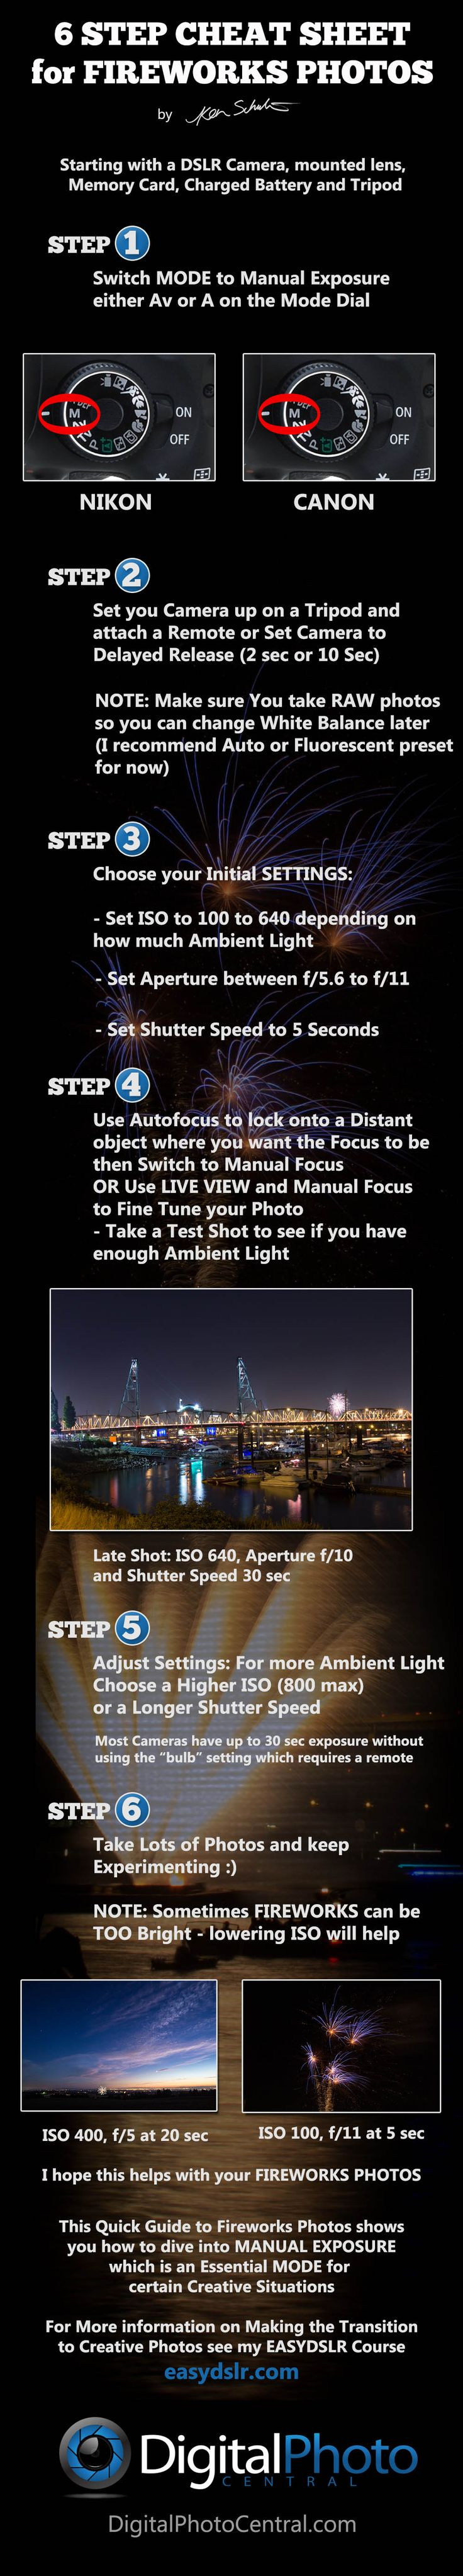 Free Fireworks Photo Video Tutorial and Cheat Sheet to get you taking awesome Night Fireworks photos.